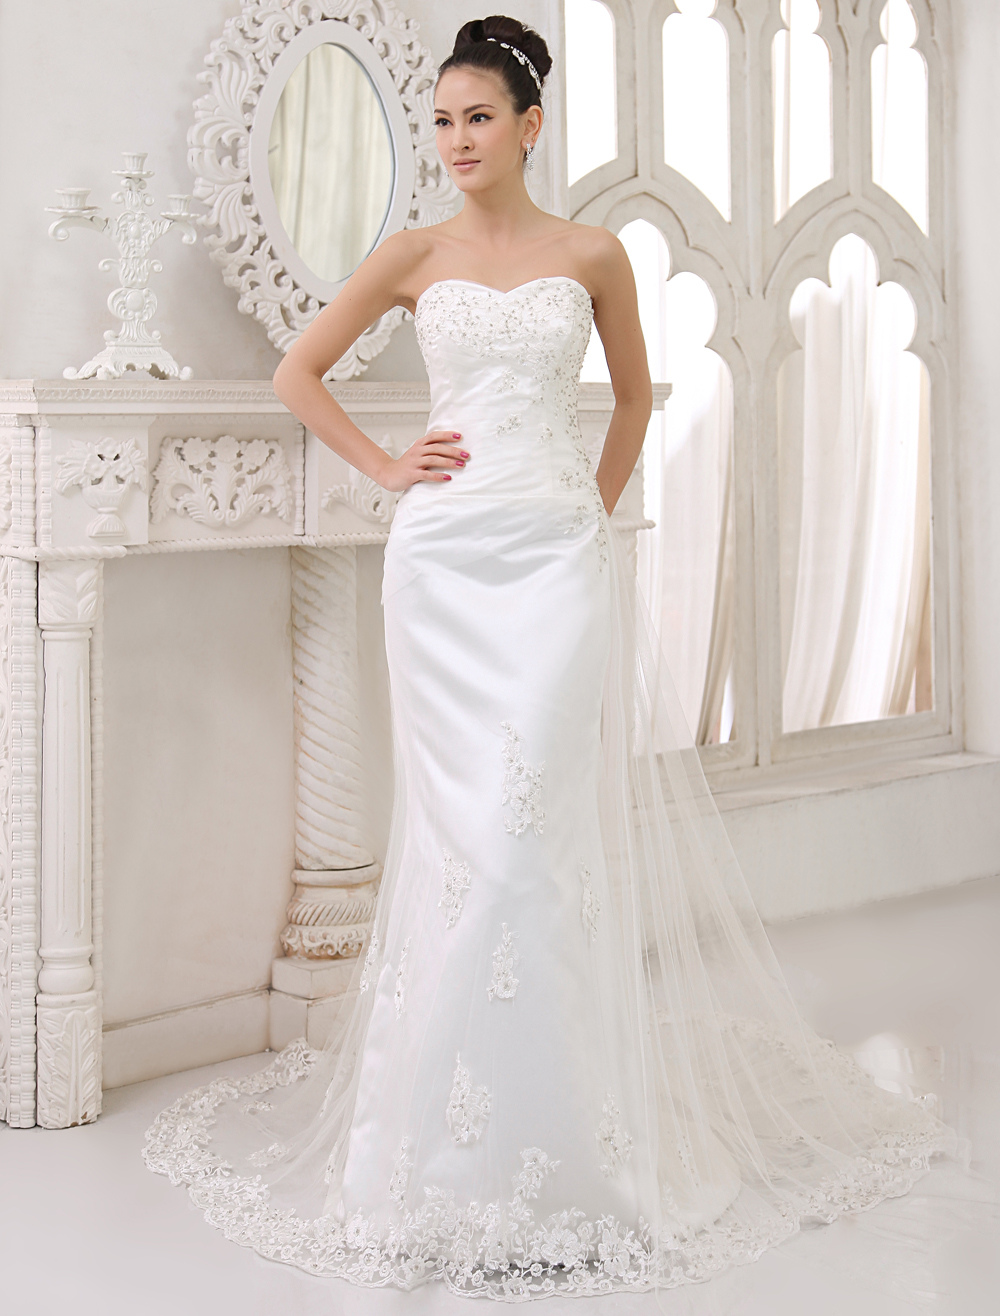 fee75c61b2 ... Lace Applique Bridal Dress Sheath Sweetheart Neckline Beading Wedding  Gown With Train. 12. 45%OFF. Color:Ivory